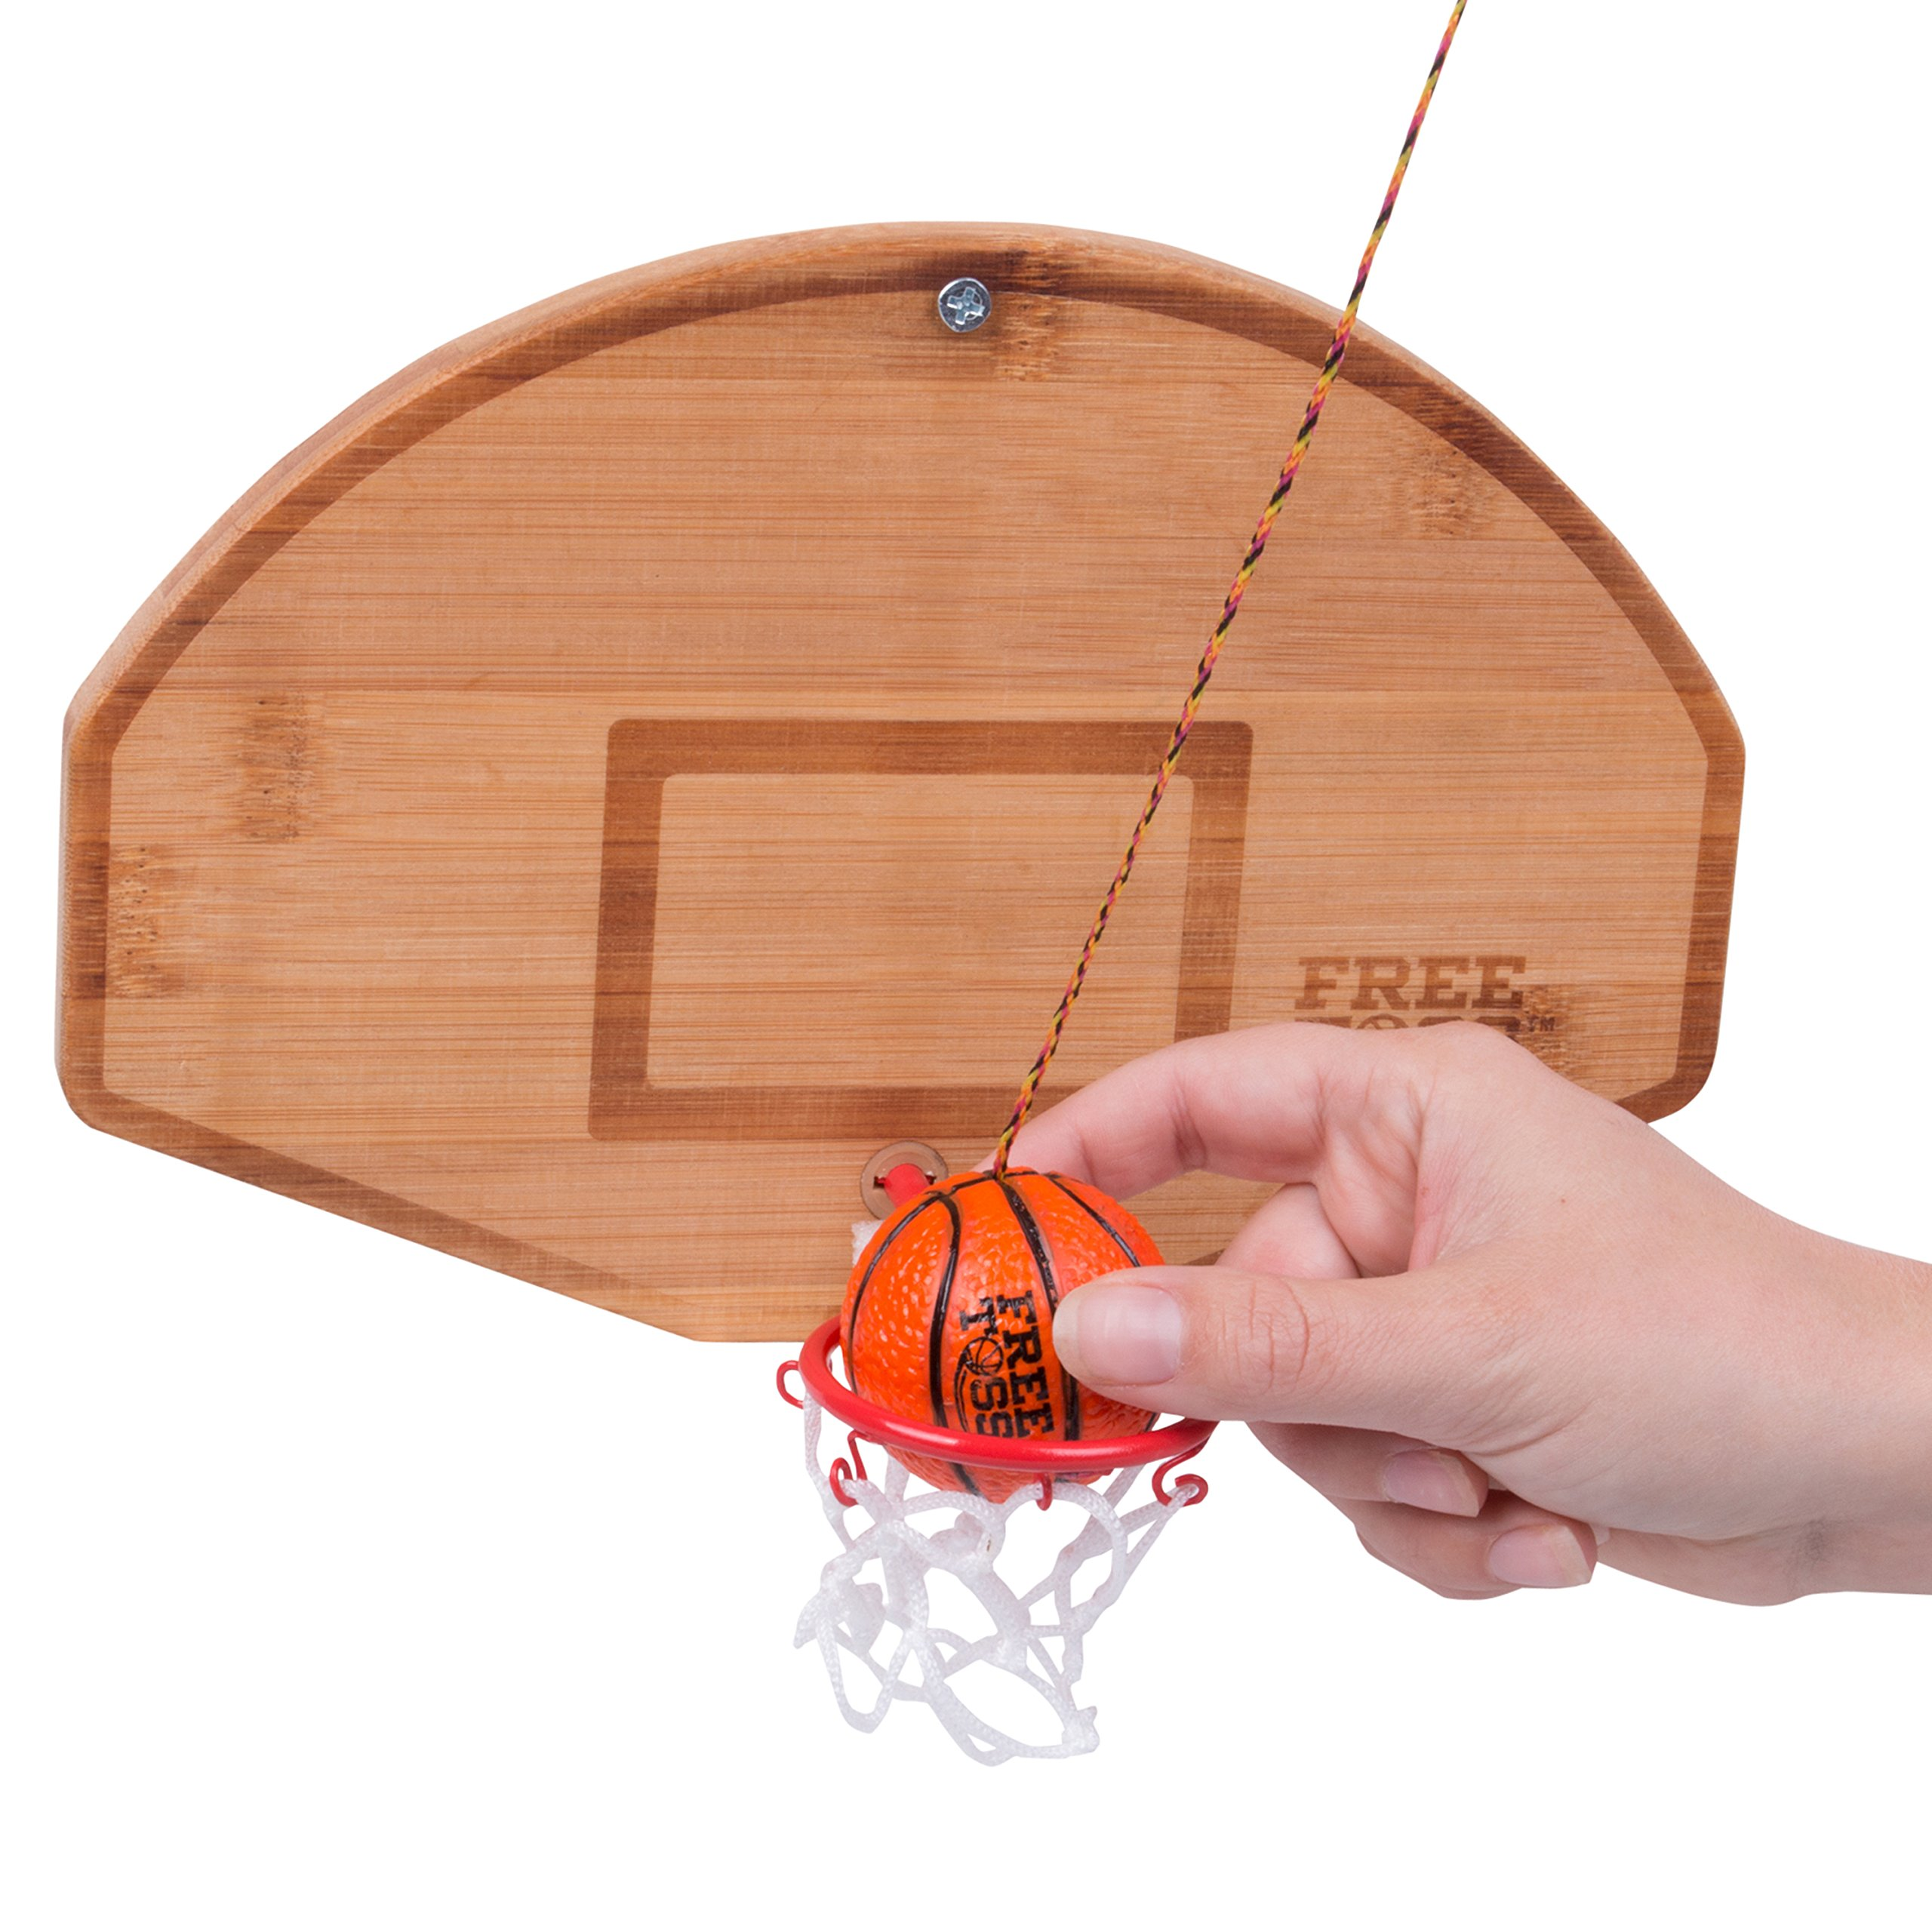 Tiki Toss Basketball and Hoop Swing Game Free Toss- Be The First to Swing A Basket 100% Bamboo Party Game (All Parts Included) by Tiki Toss